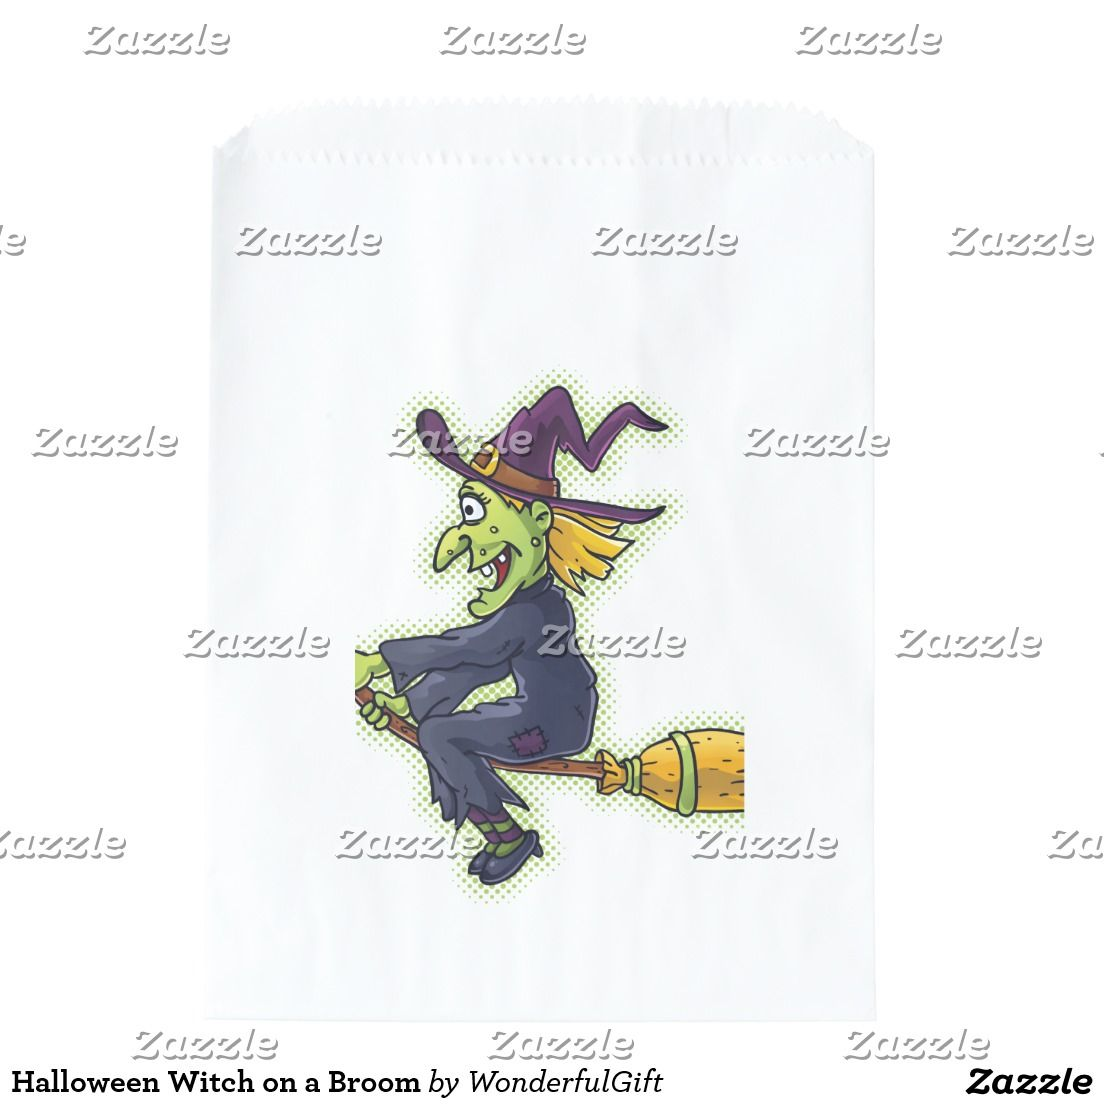 Halloween Witch on a Broom